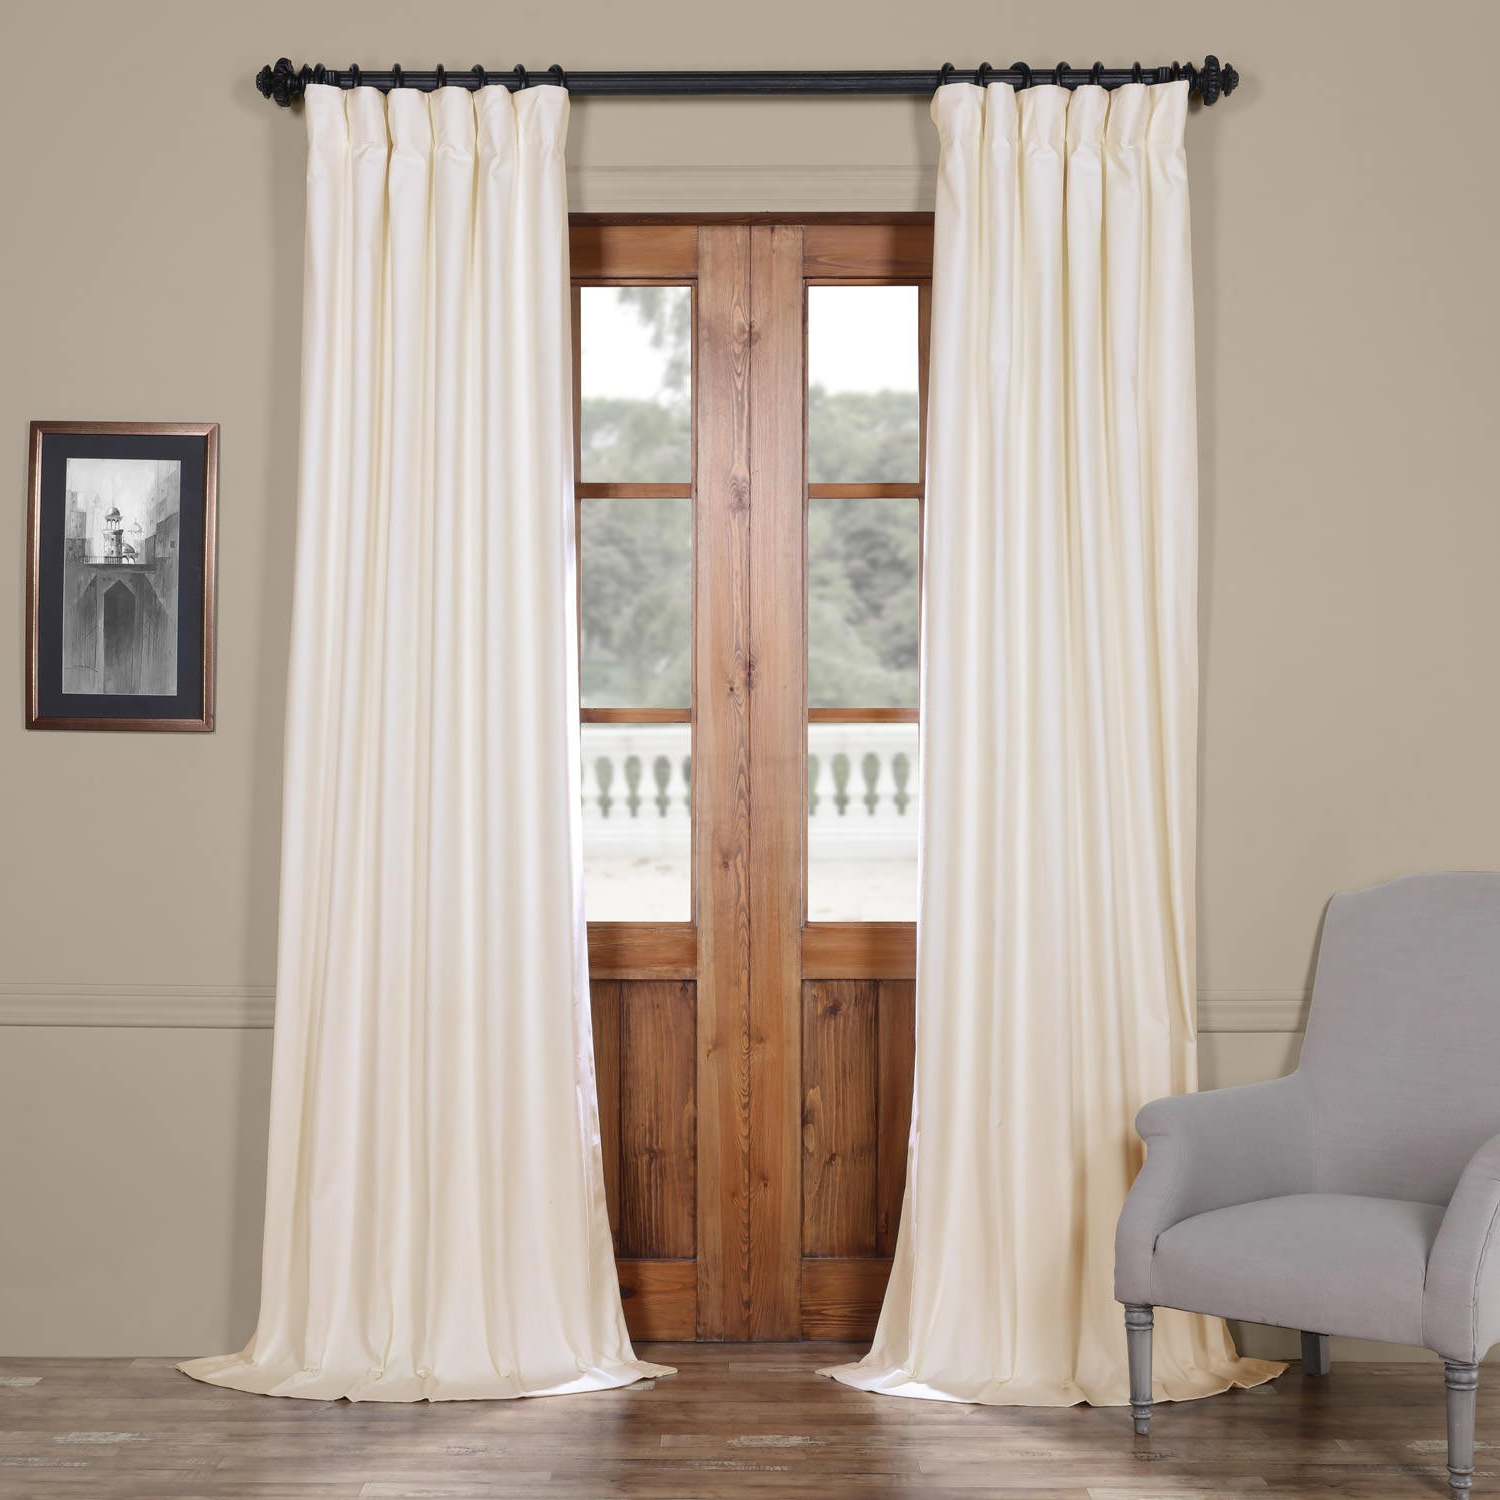 Recent Prct Bo01B 96 Solid Cotton Blackout Curtain, 50 X 96, Fresh Popcorn Within Solid Cotton True Blackout Curtain Panels (Gallery 2 of 20)